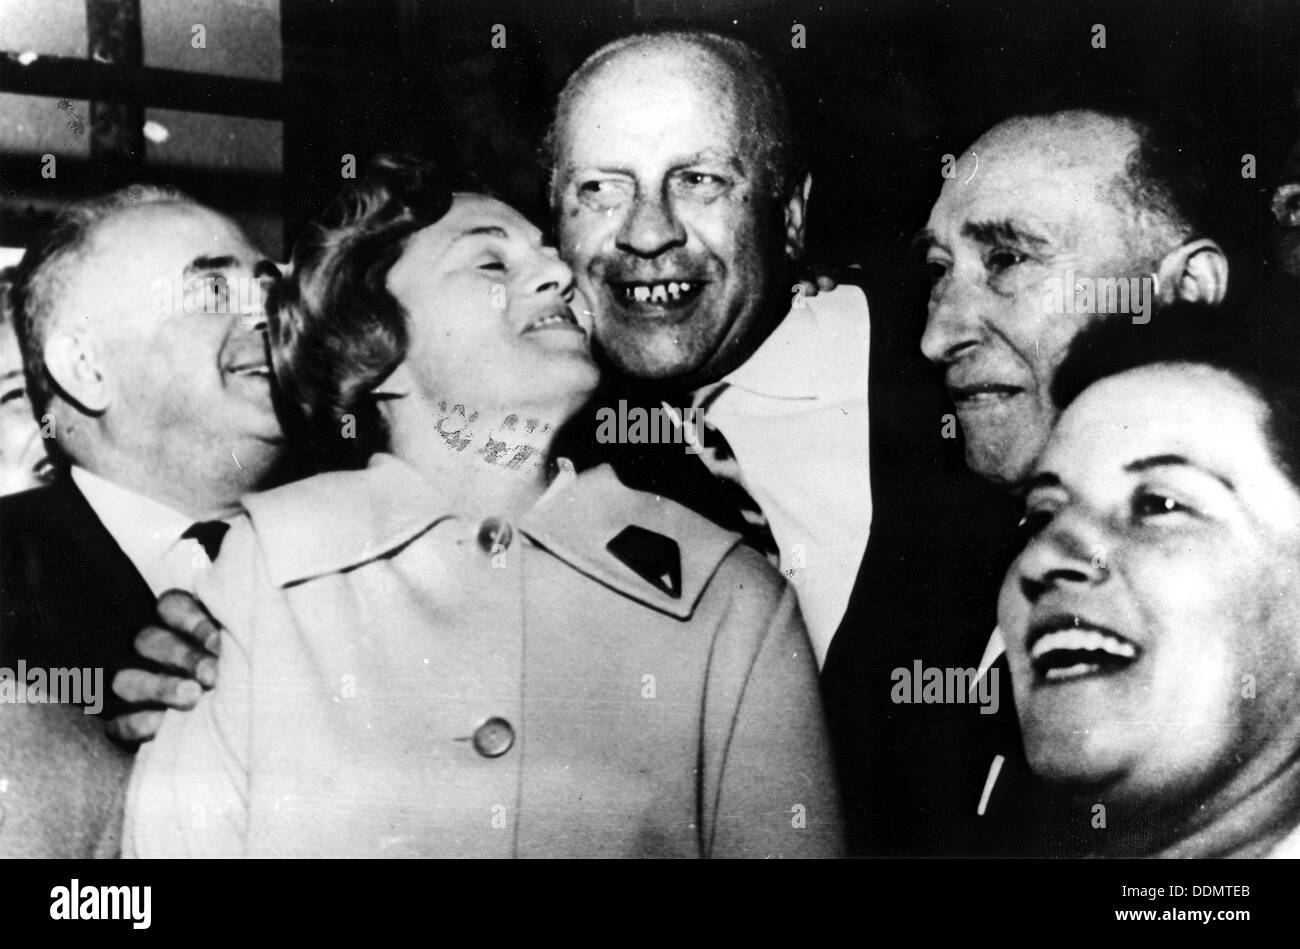 Oscar Schindler (1908-1978), German businessman, with Isaac Stern. - Stock Image